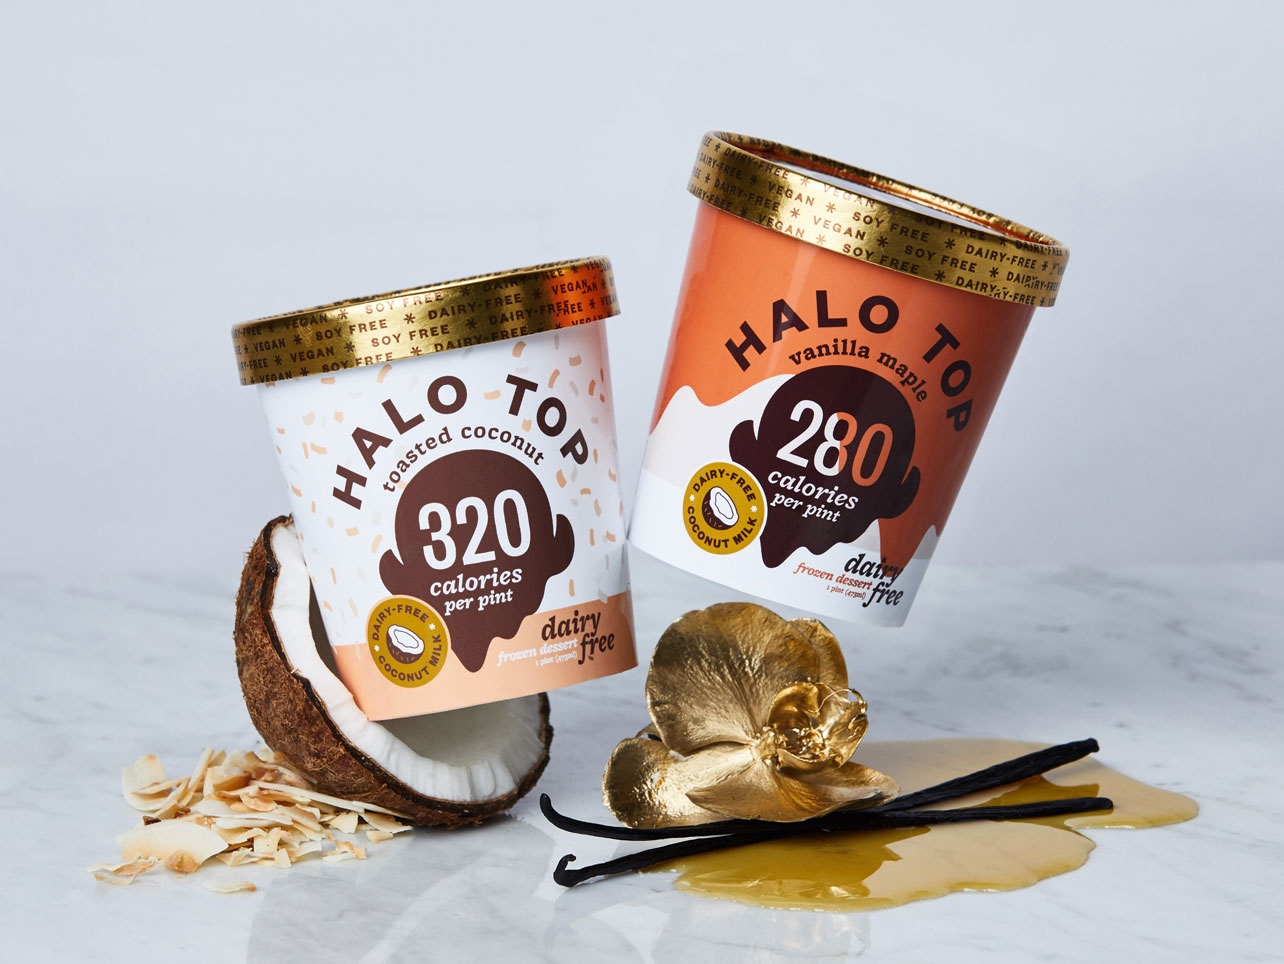 Toasted Coconut Halo Top